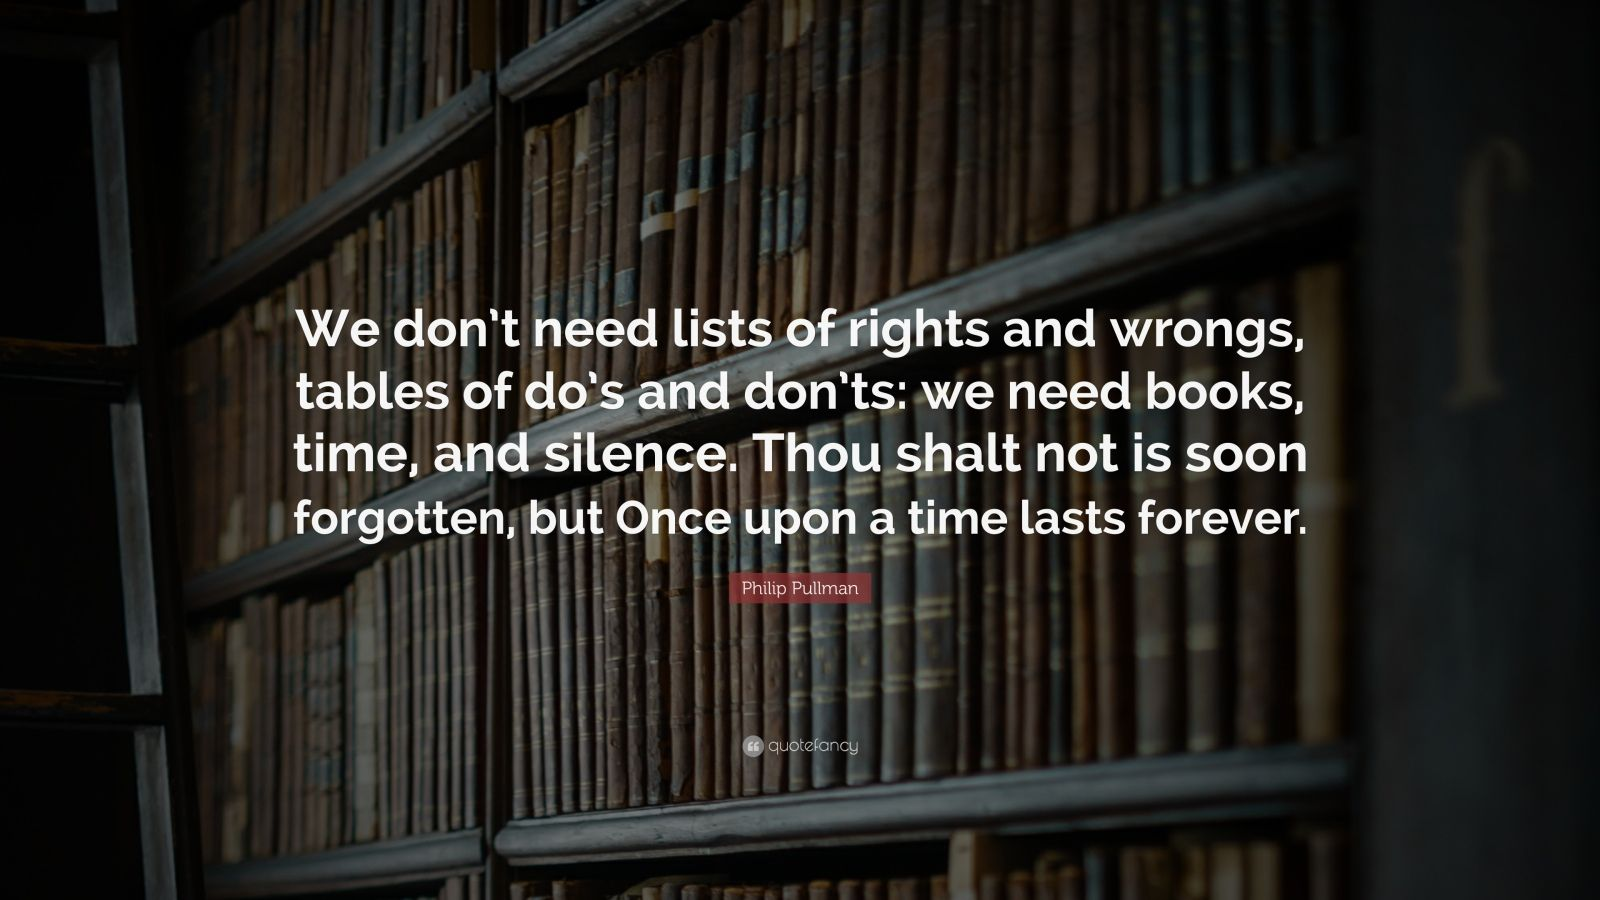 """Philip Pullman Quote: """"We don't need lists of rights and wrongs, tables of do's and don'ts: we need books, time, and silence. Thou shalt not is soon forgotten, but Once upon a time lasts forever."""""""